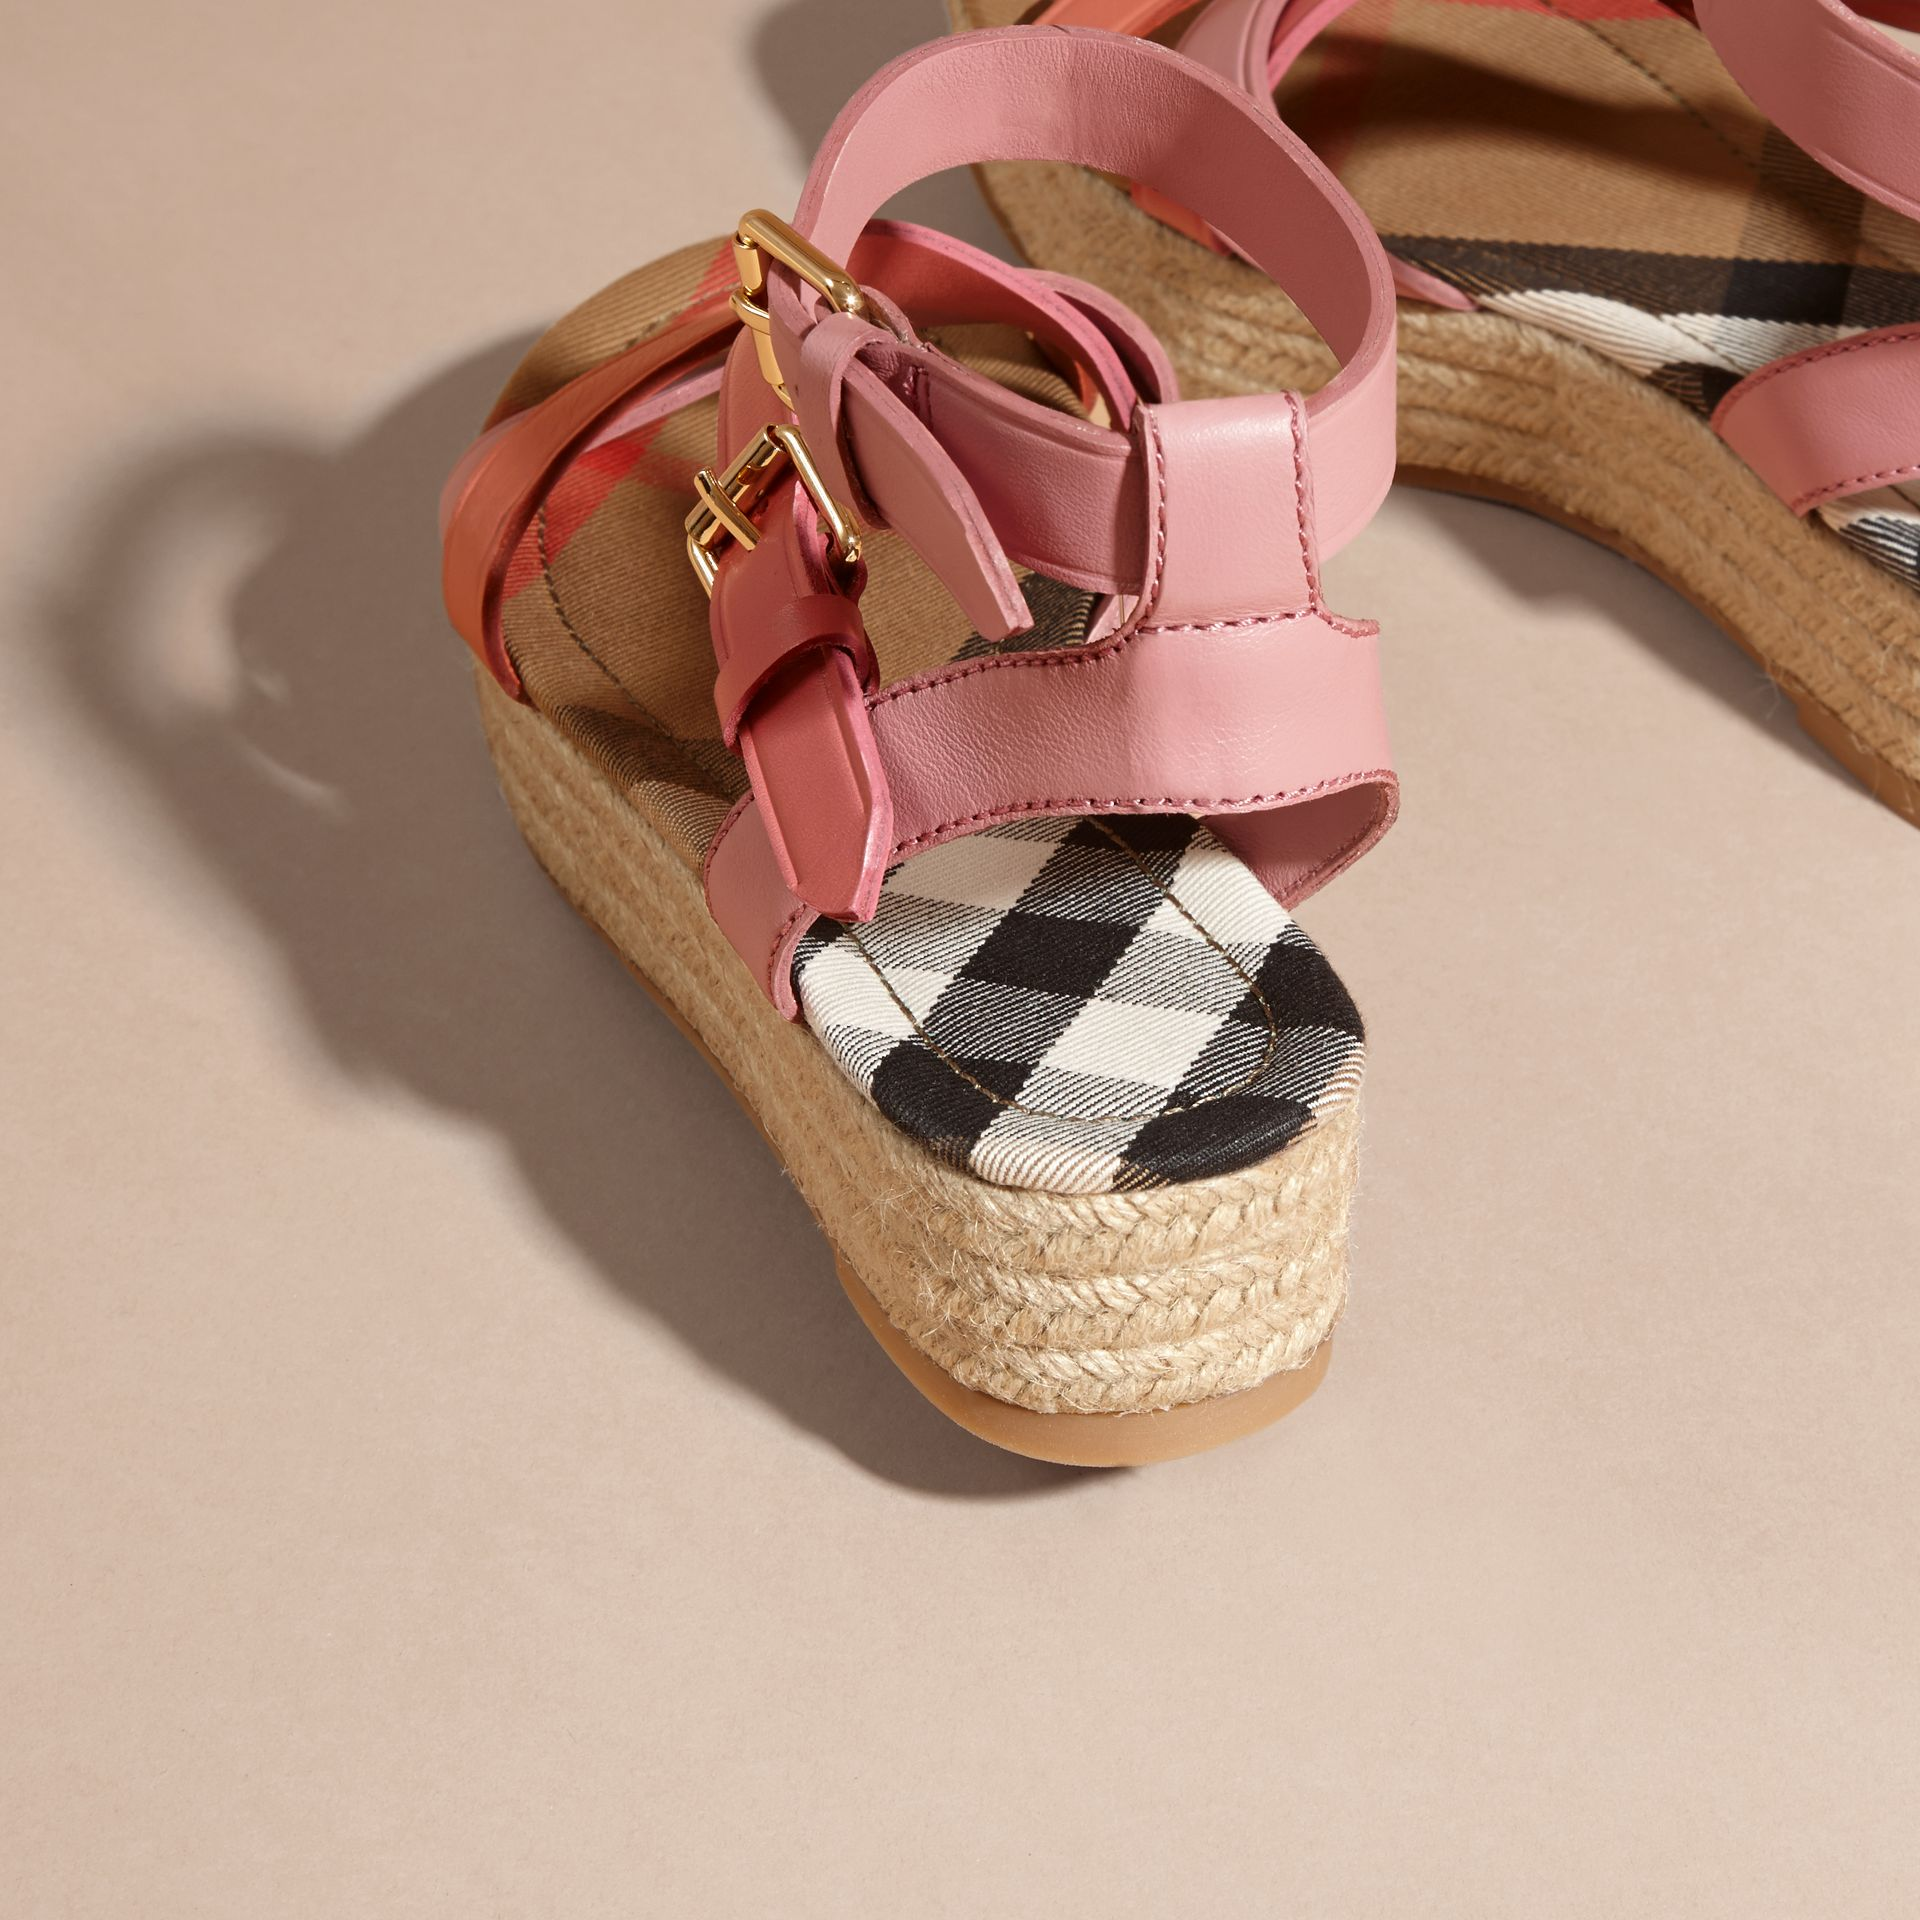 Two-tone Leather Espadrille Sandals in Dusty Pink - Women | Burberry Australia - gallery image 5